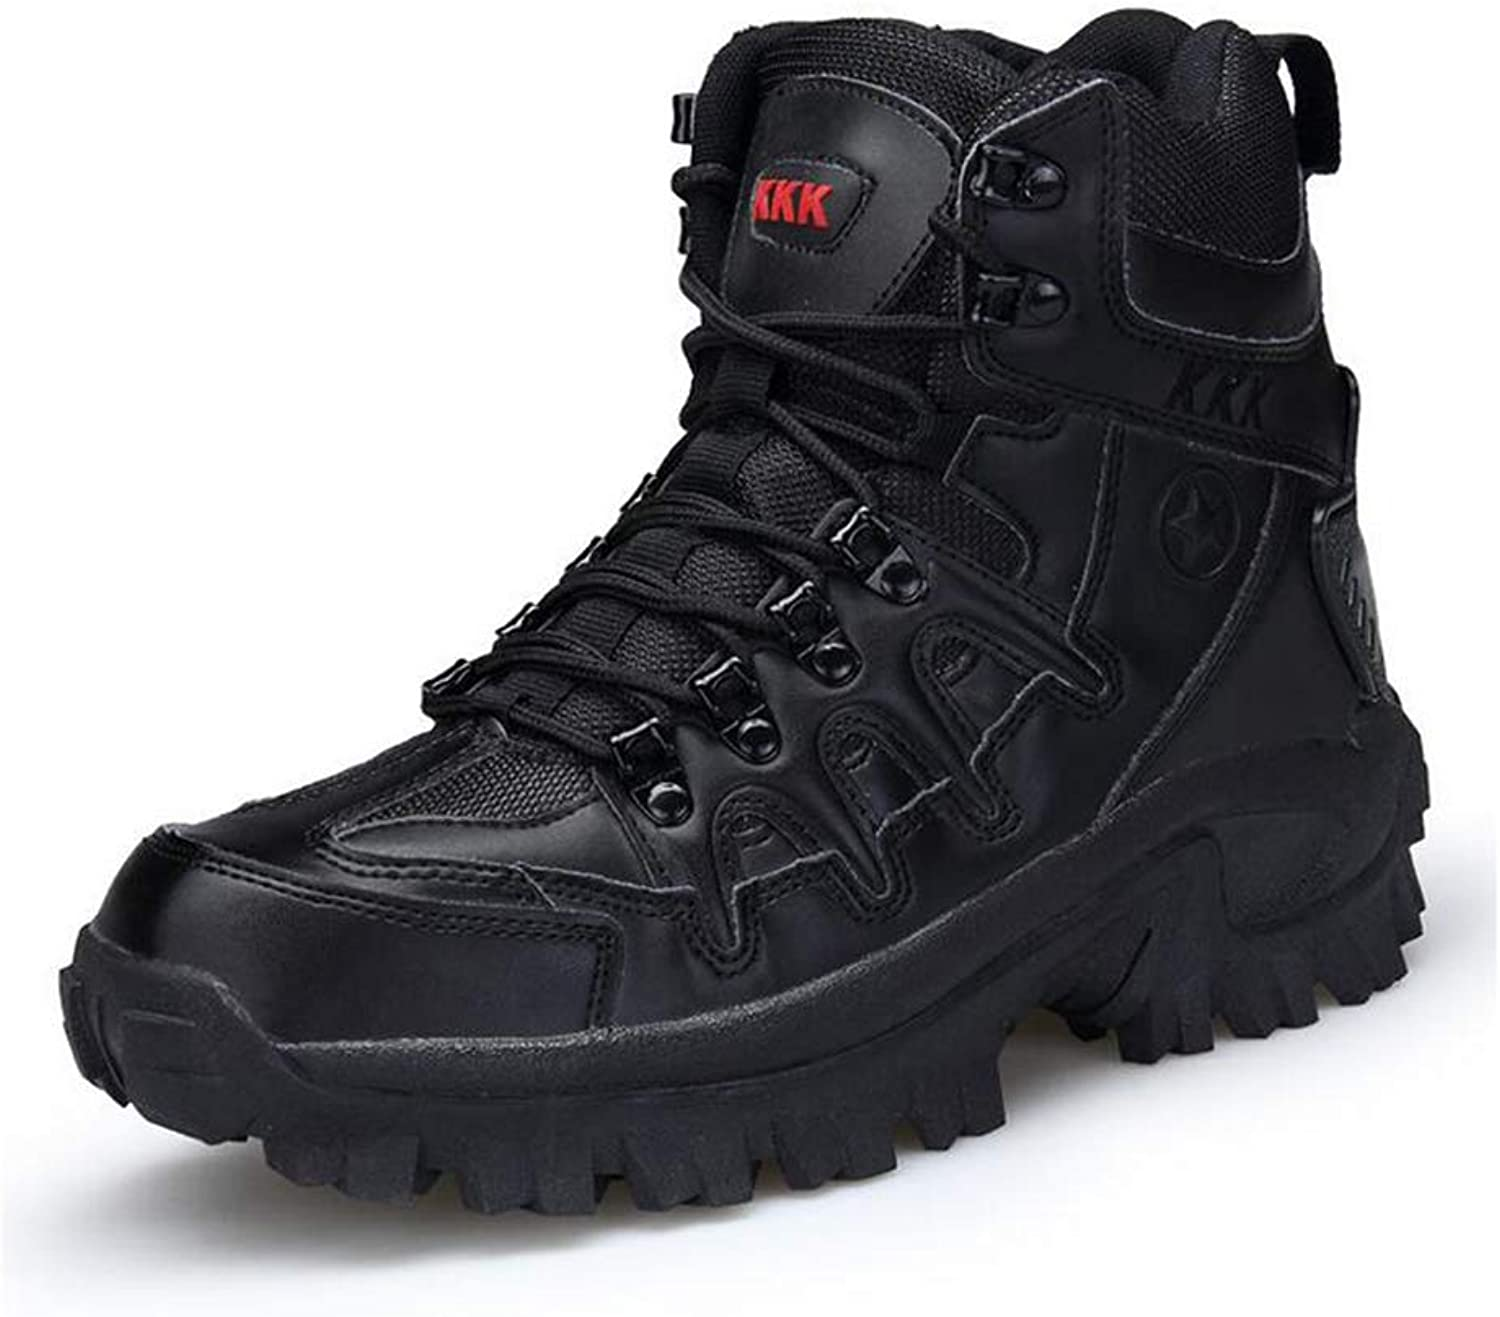 Y-H Men's Casual shoes, Hiking shoes, Fall winter Comfort Sneakers, High-top Military Boots,Tooling Boots,Slip-Ons Wearable Training shoes (color   Black, Size   45)